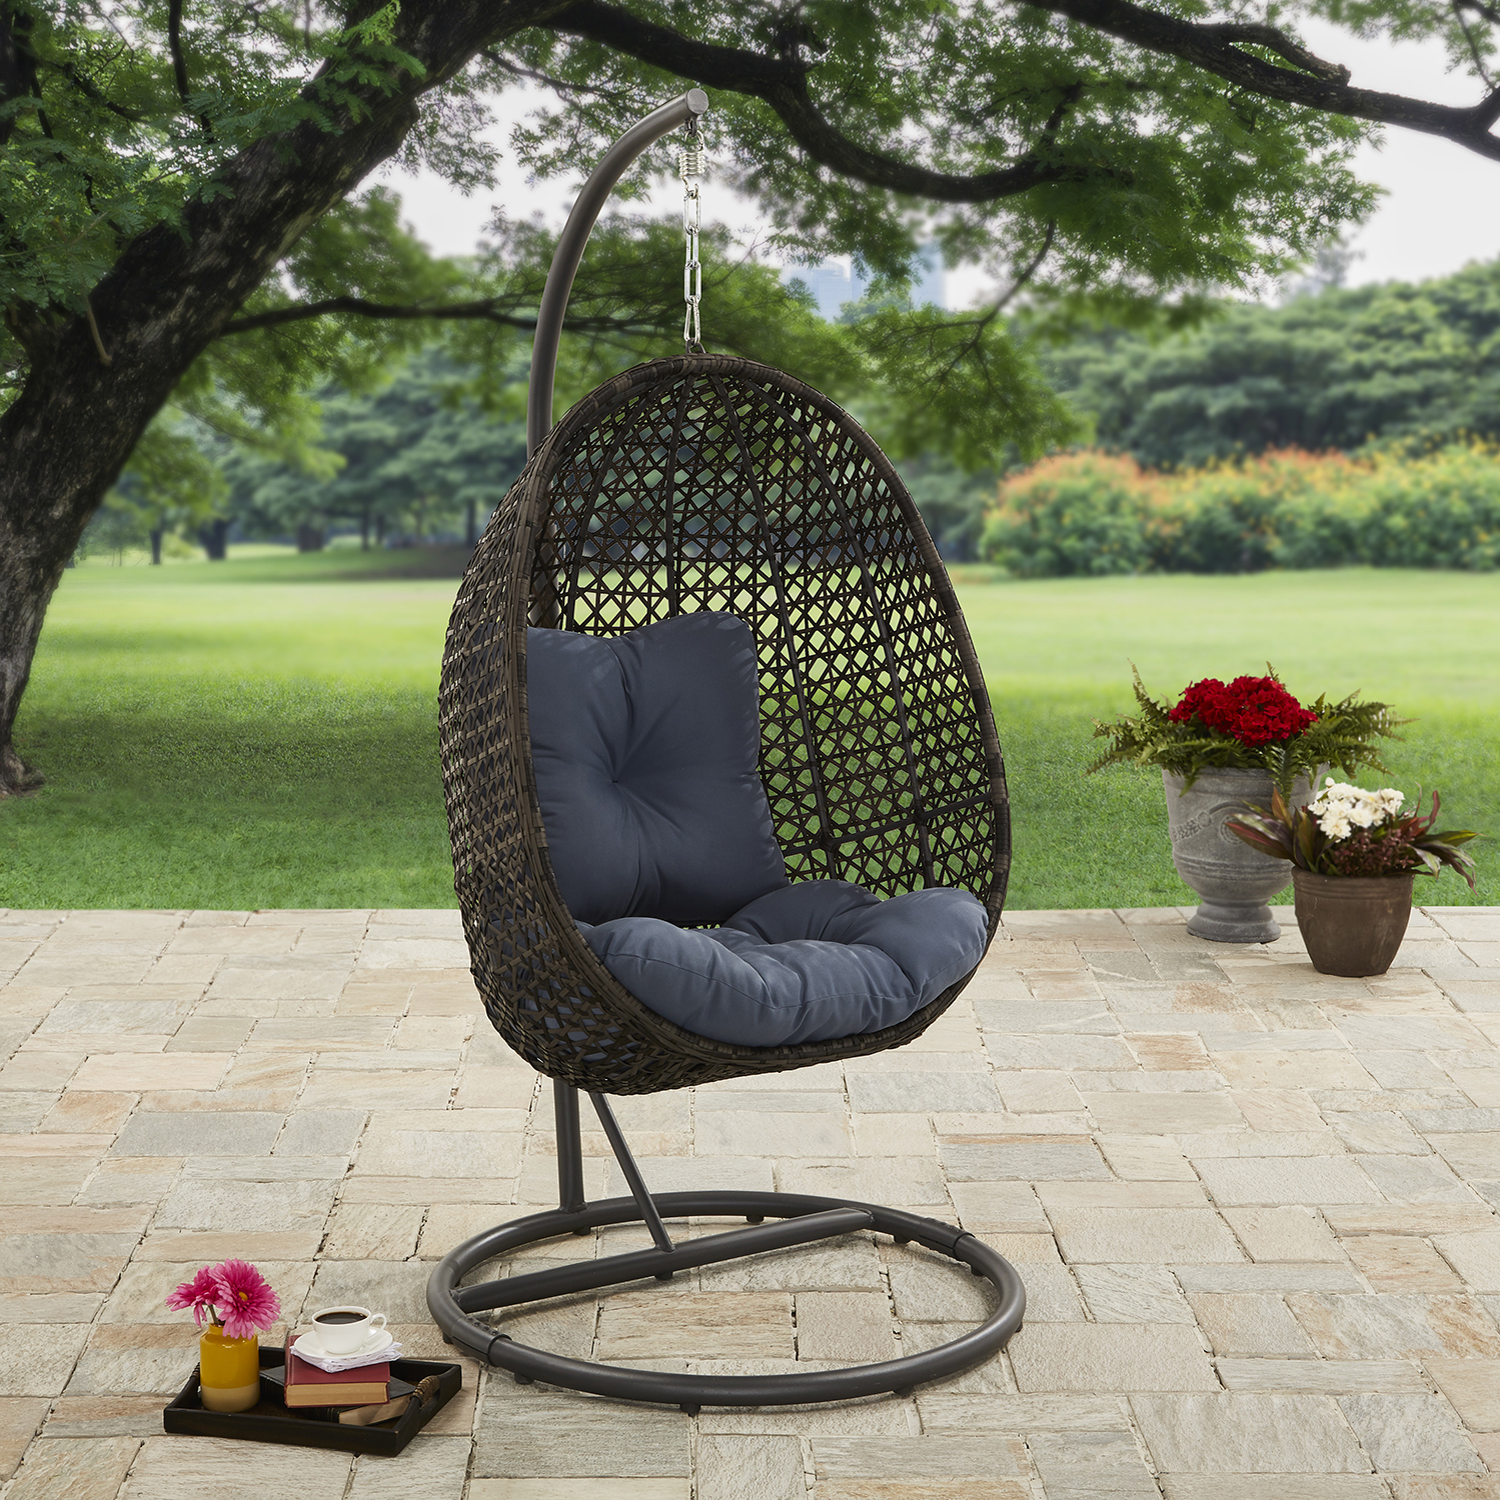 Better Homes And Gardens Lantis Outdoor Wicker Hanging Chair With Stand by Better Homes & Gardens